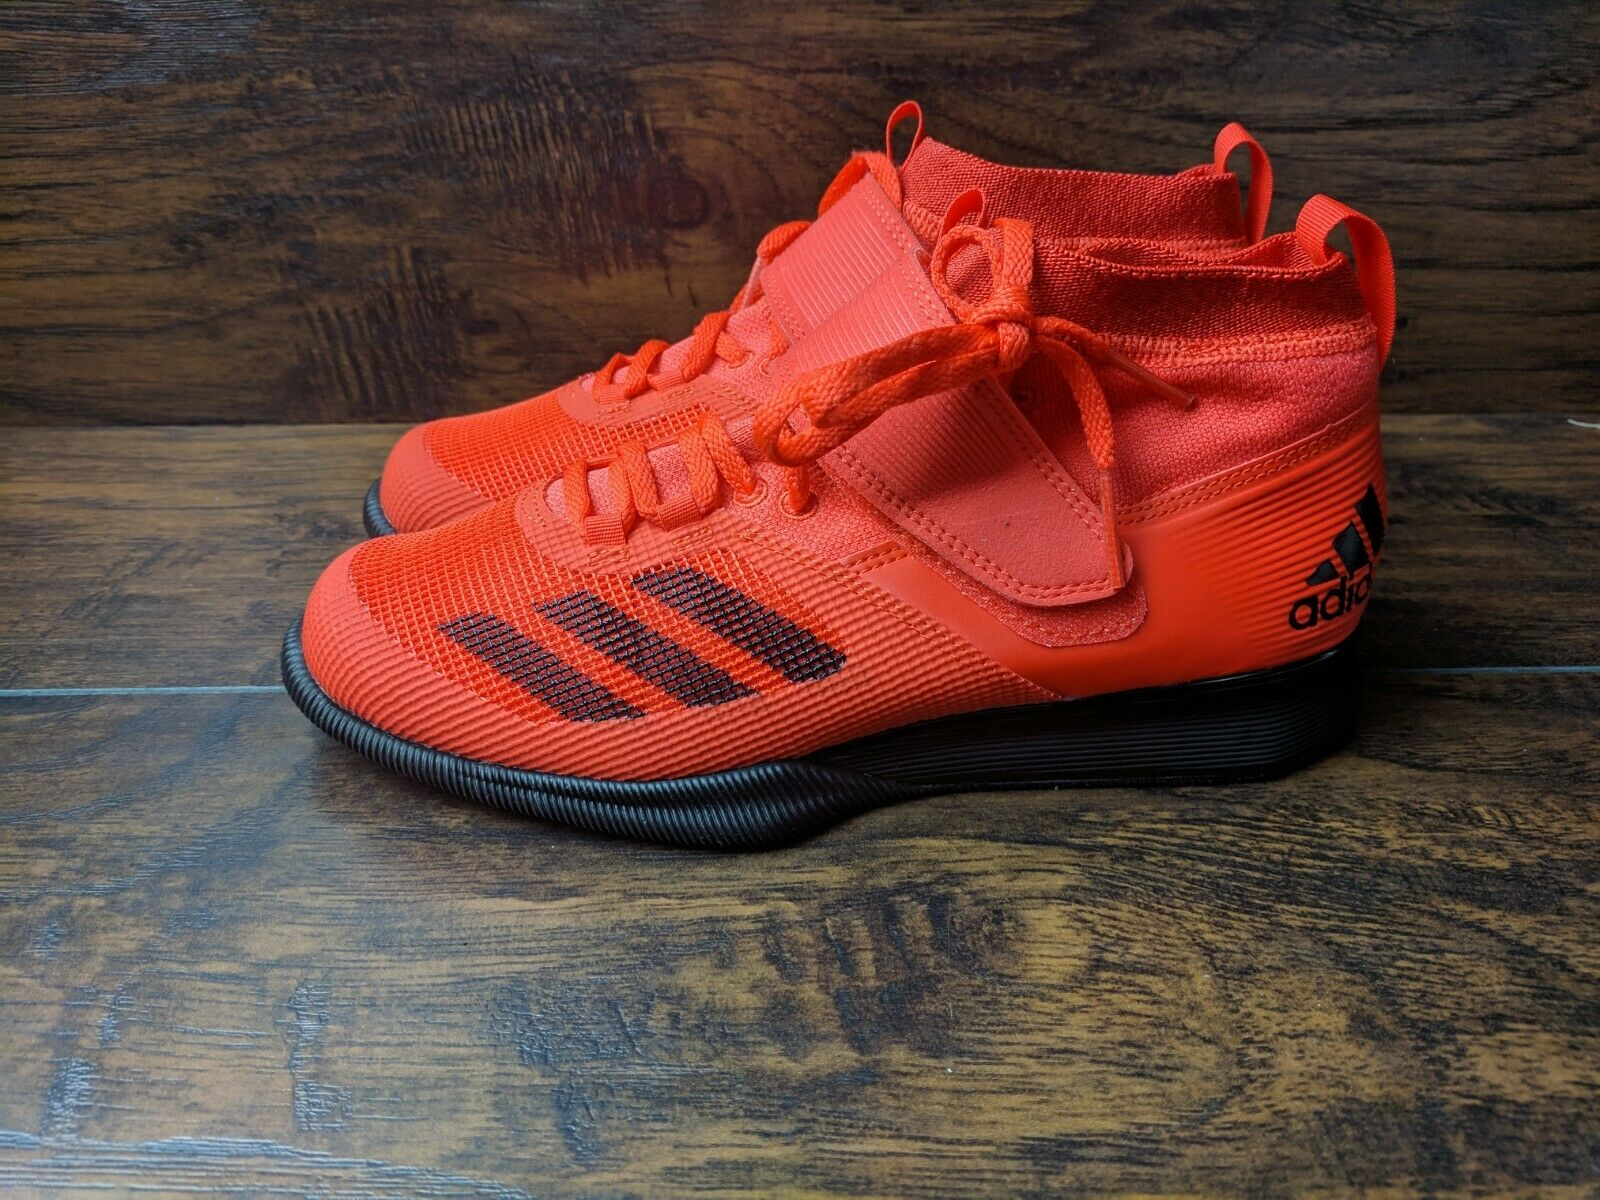 Brand New Adidas Crazy Power RK Men's Size 6.5 Weightlifting shoes Red Black